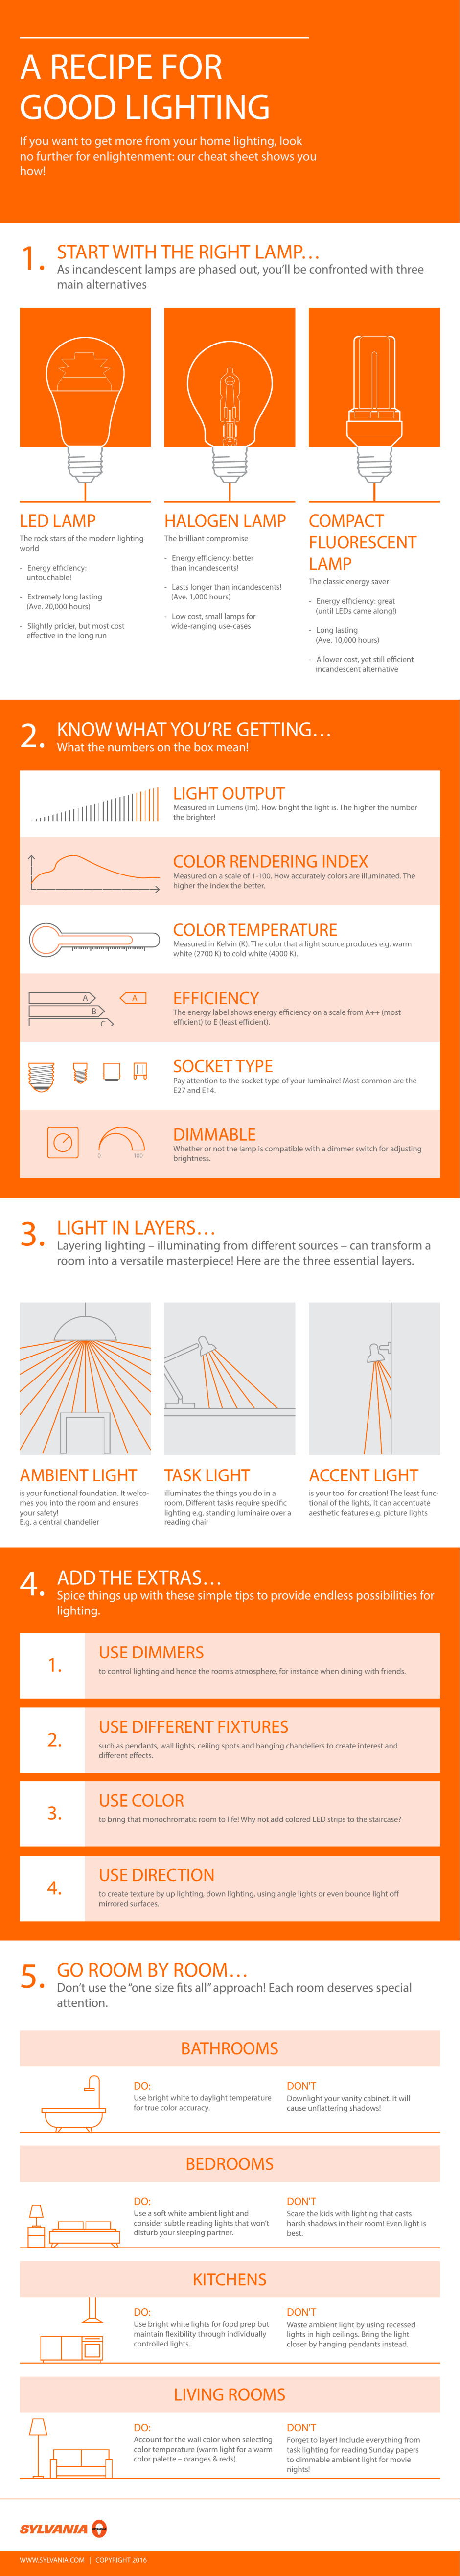 Infographic: A Recipe For Good Lighting